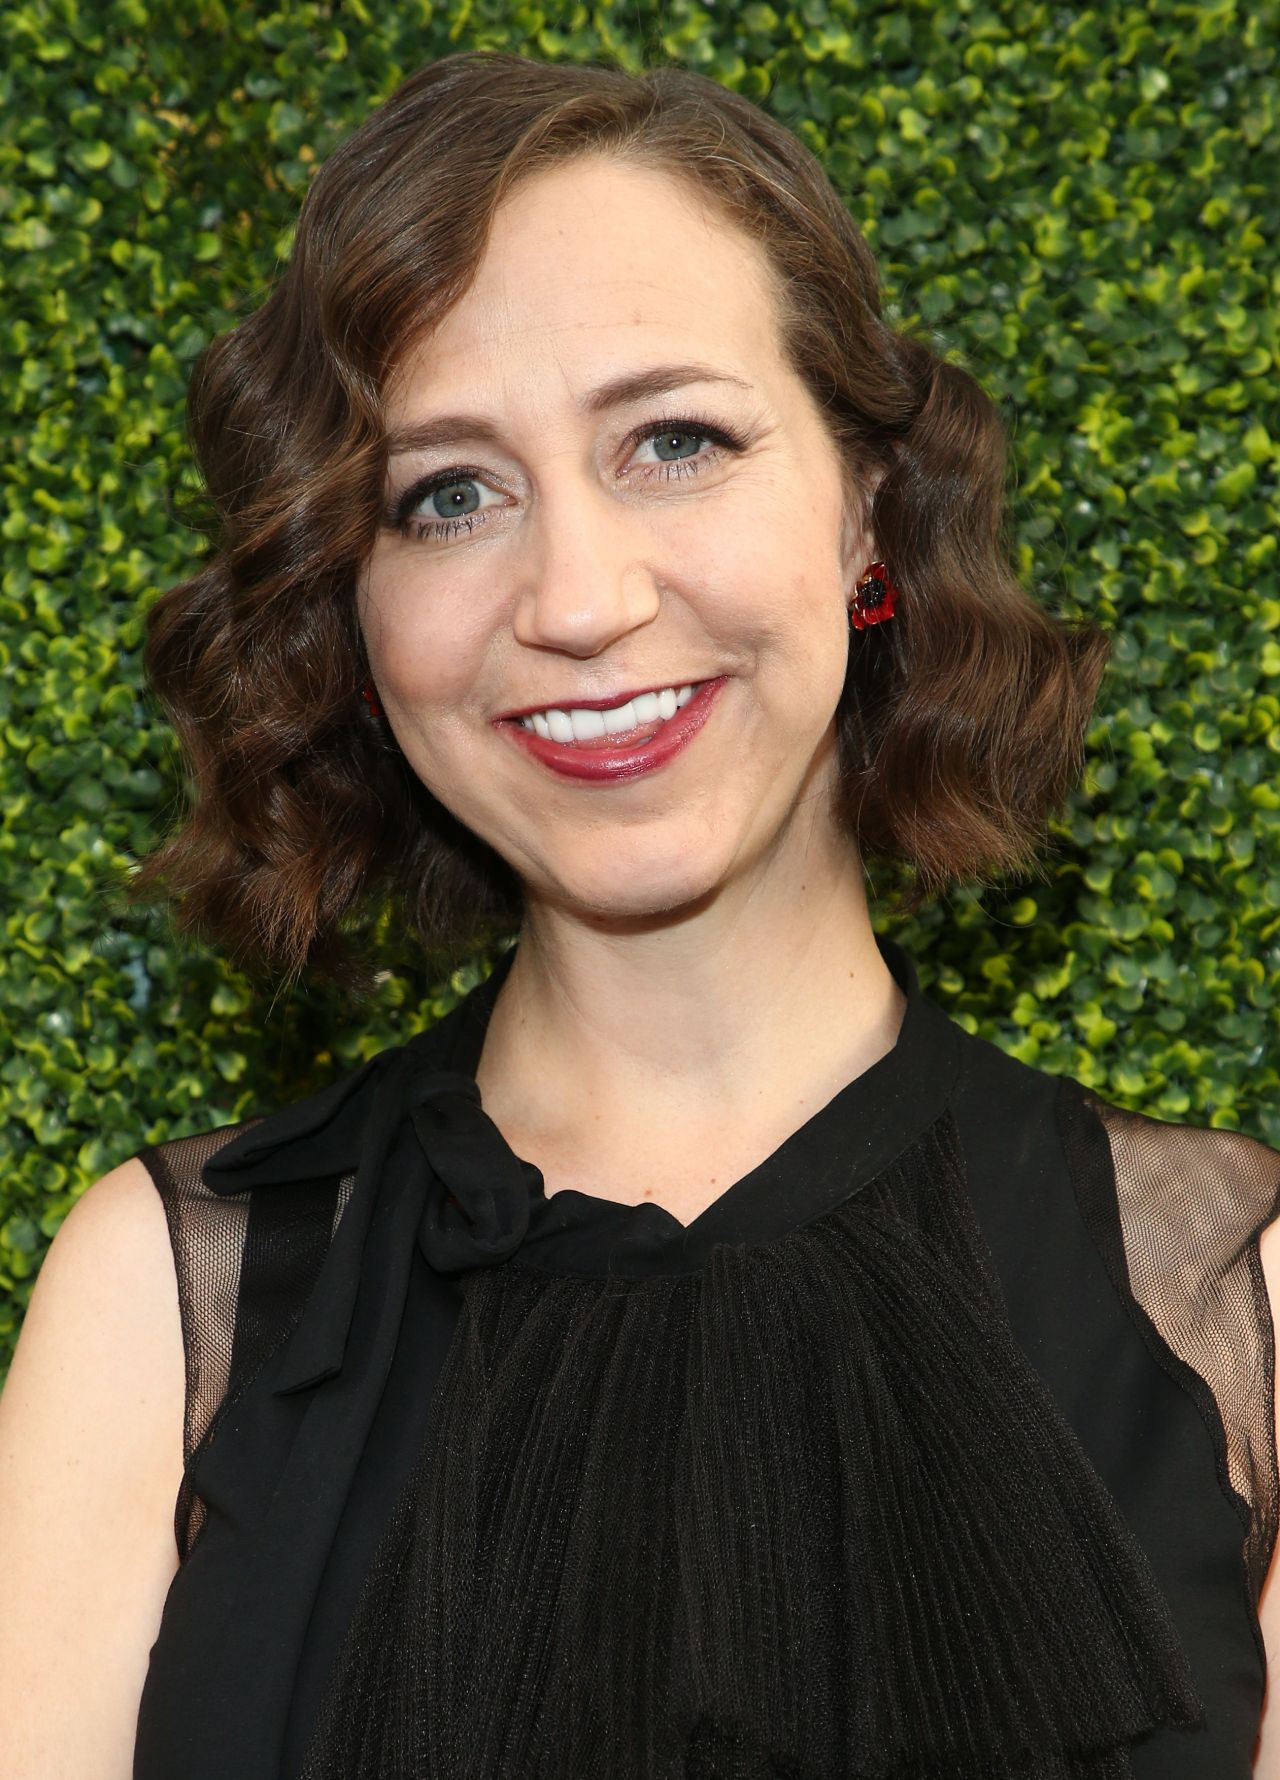 Kristen Schaal nude (45 photo), Ass, Leaked, Boobs, in bikini 2017